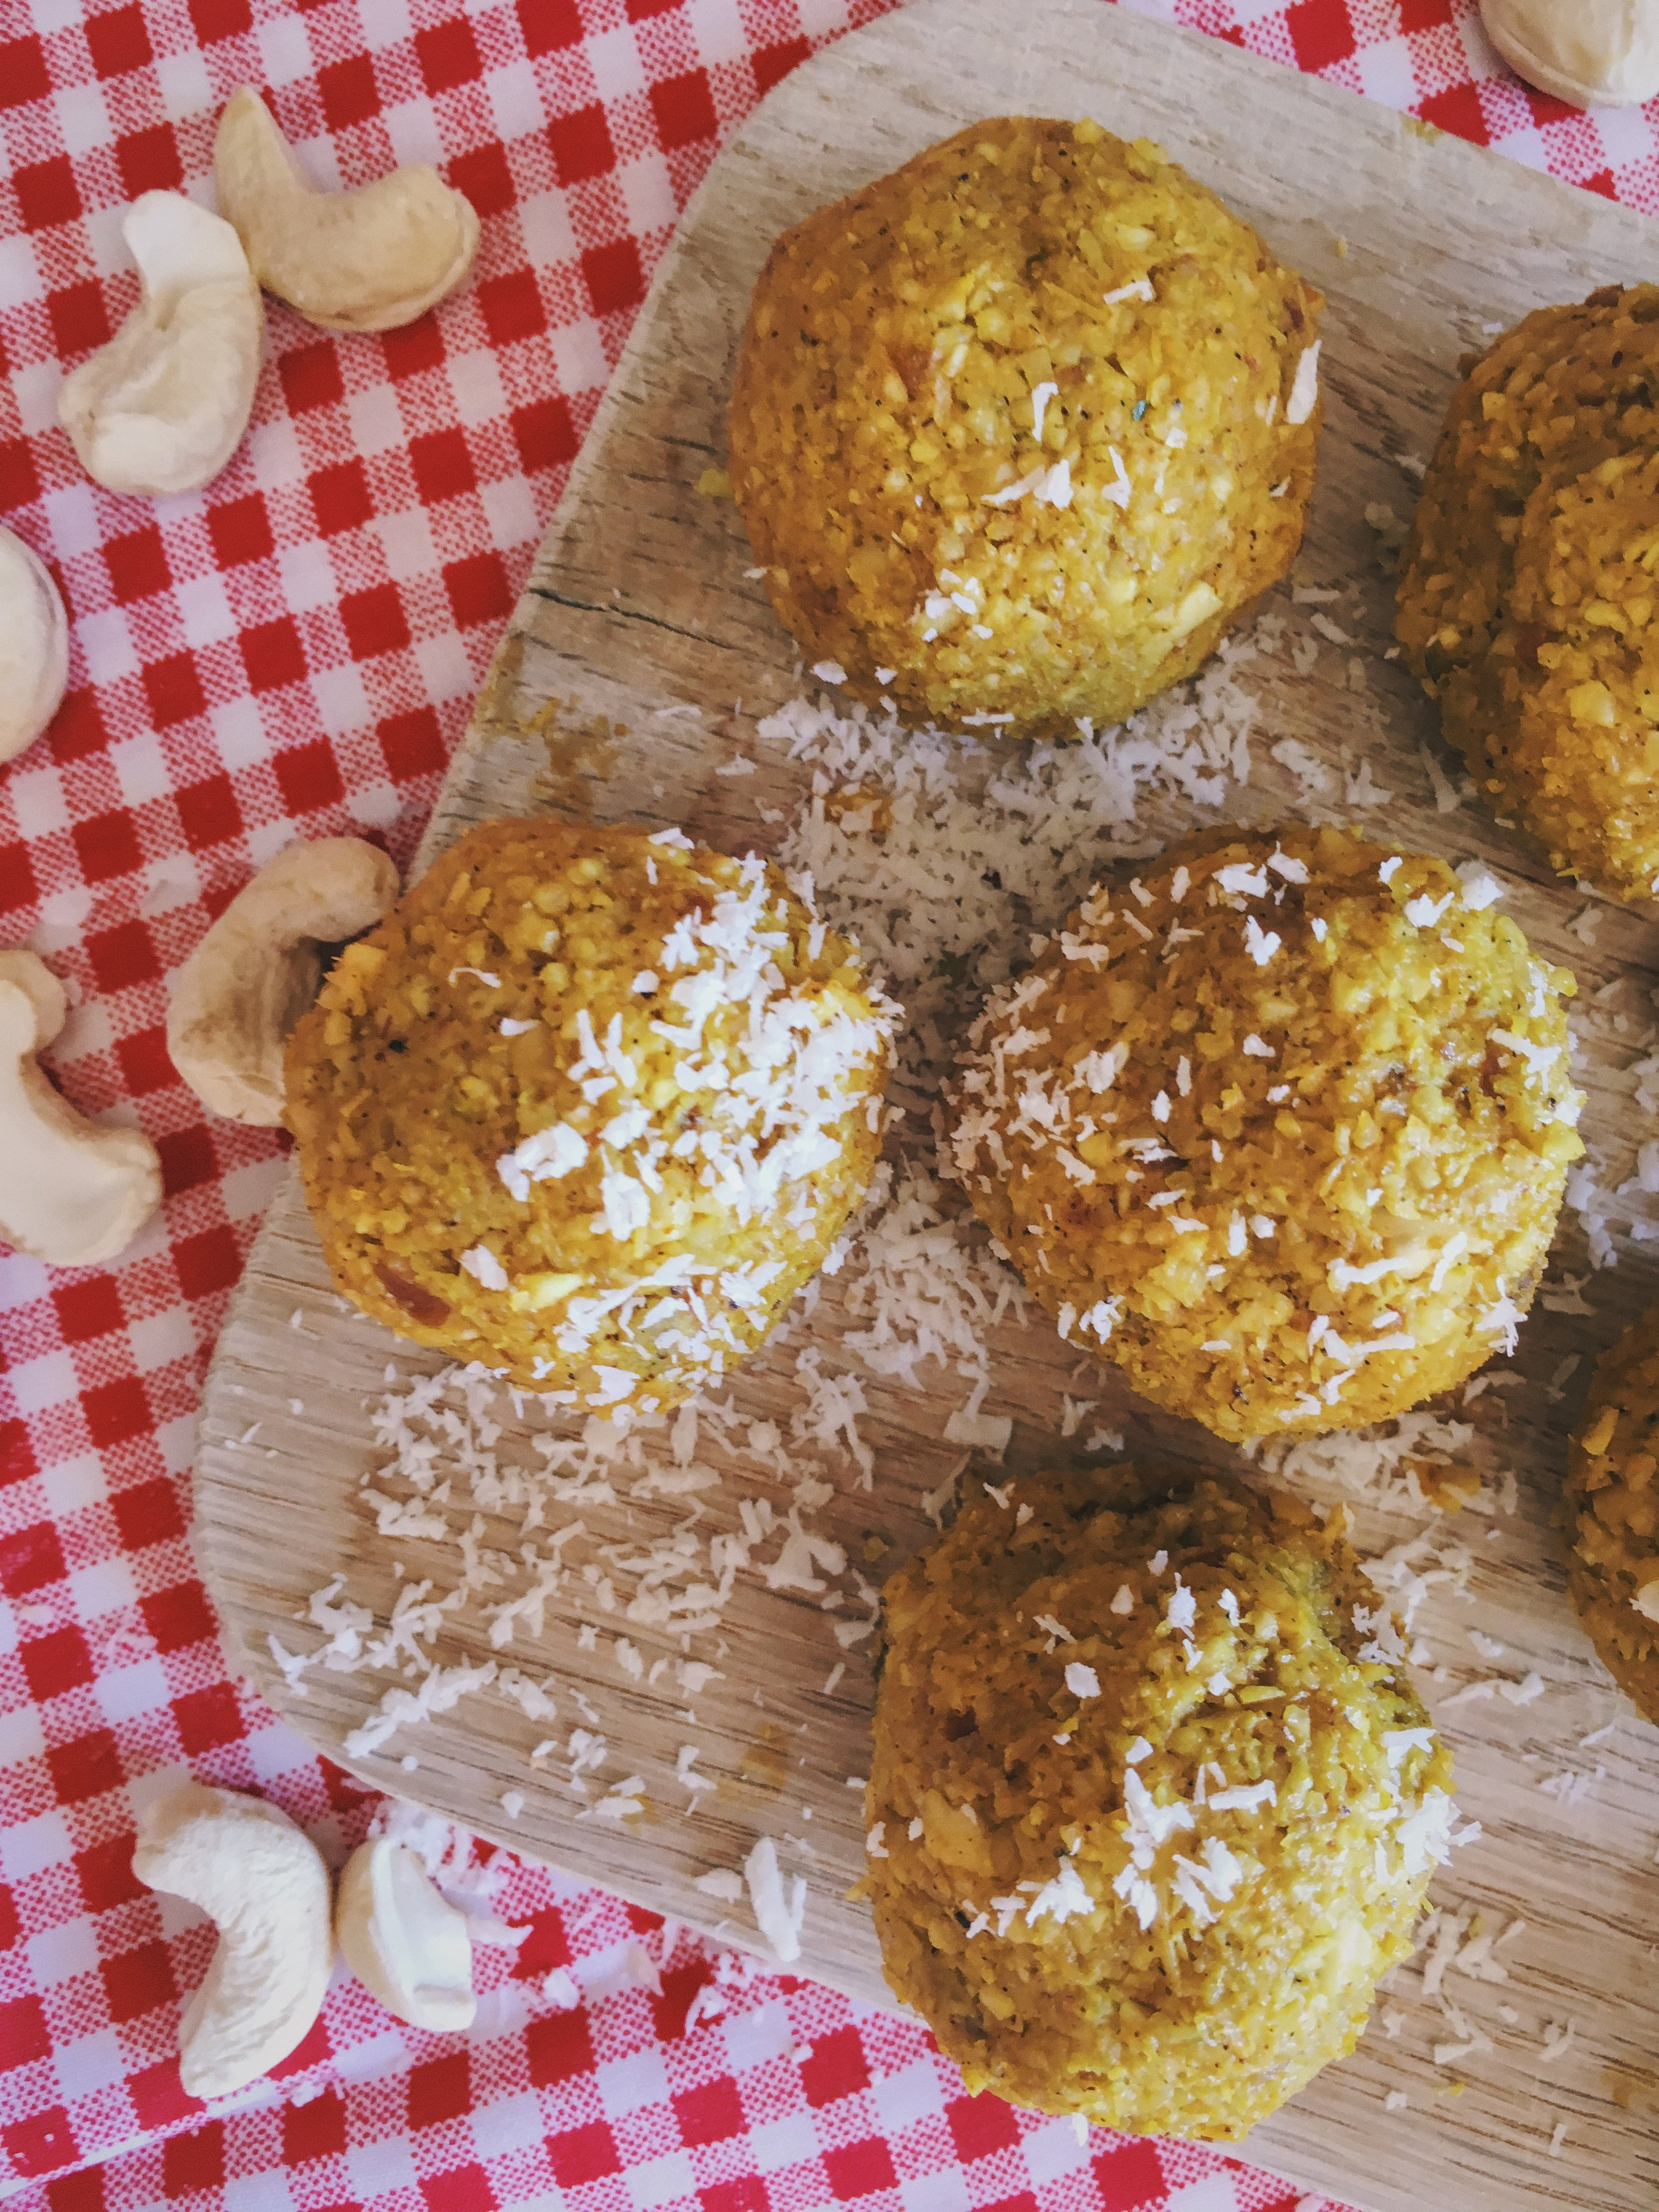 Lemon zest, cashew nuts and date balls and energy bites